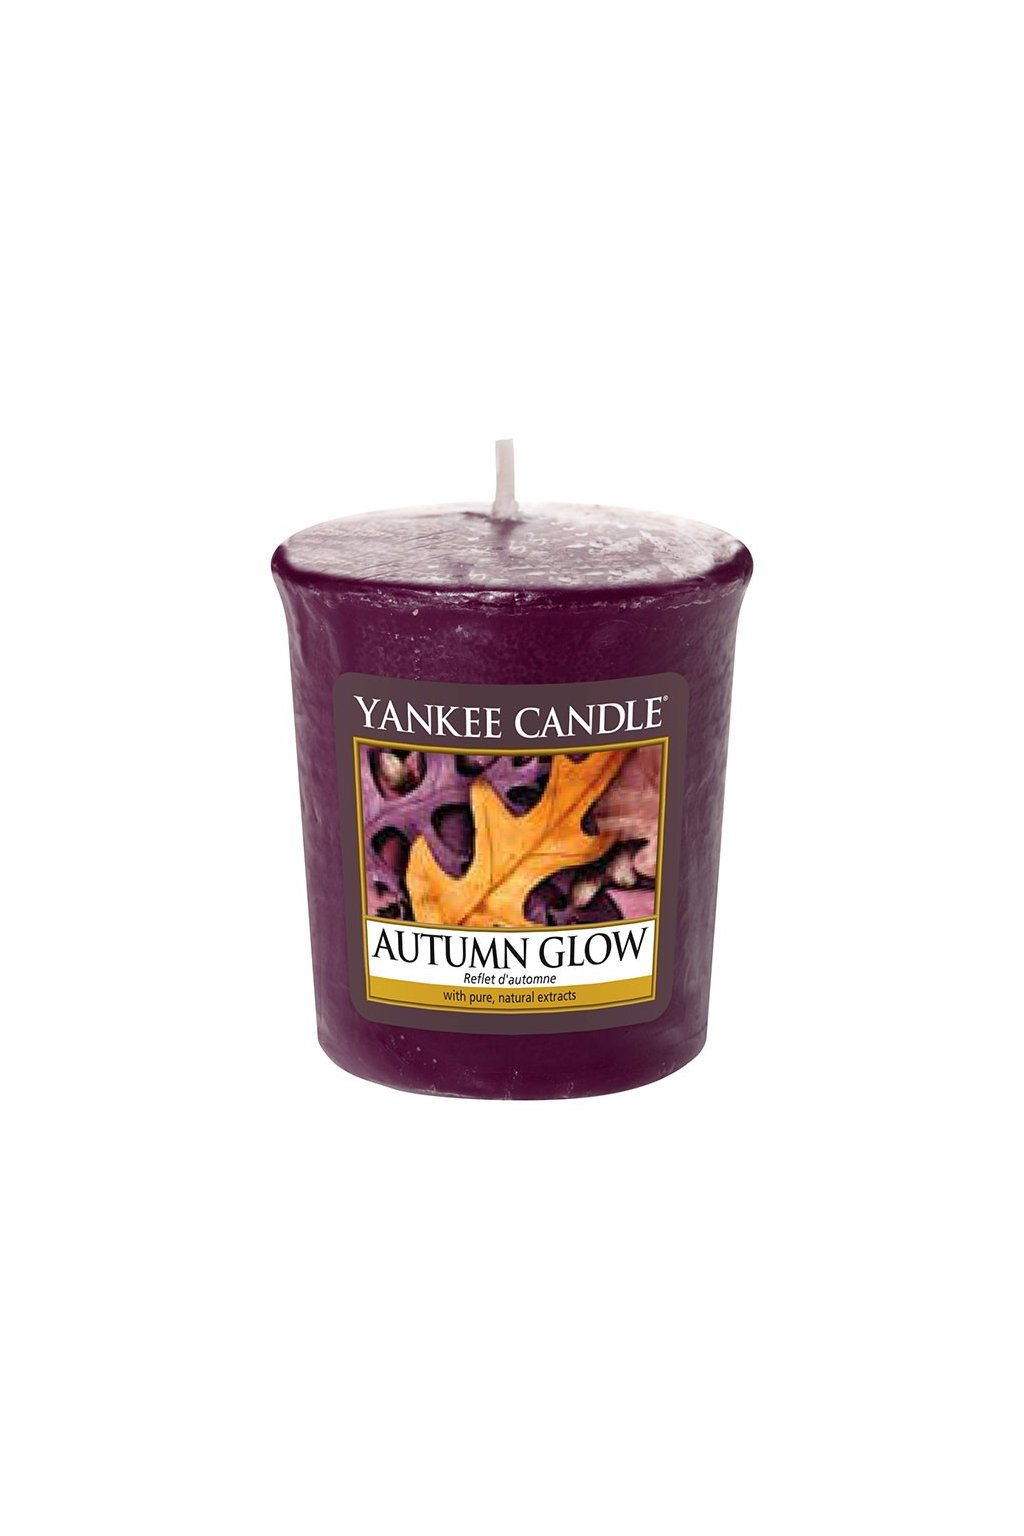 yankee candle fall in love autumn glow votive sampler candle 1556221e